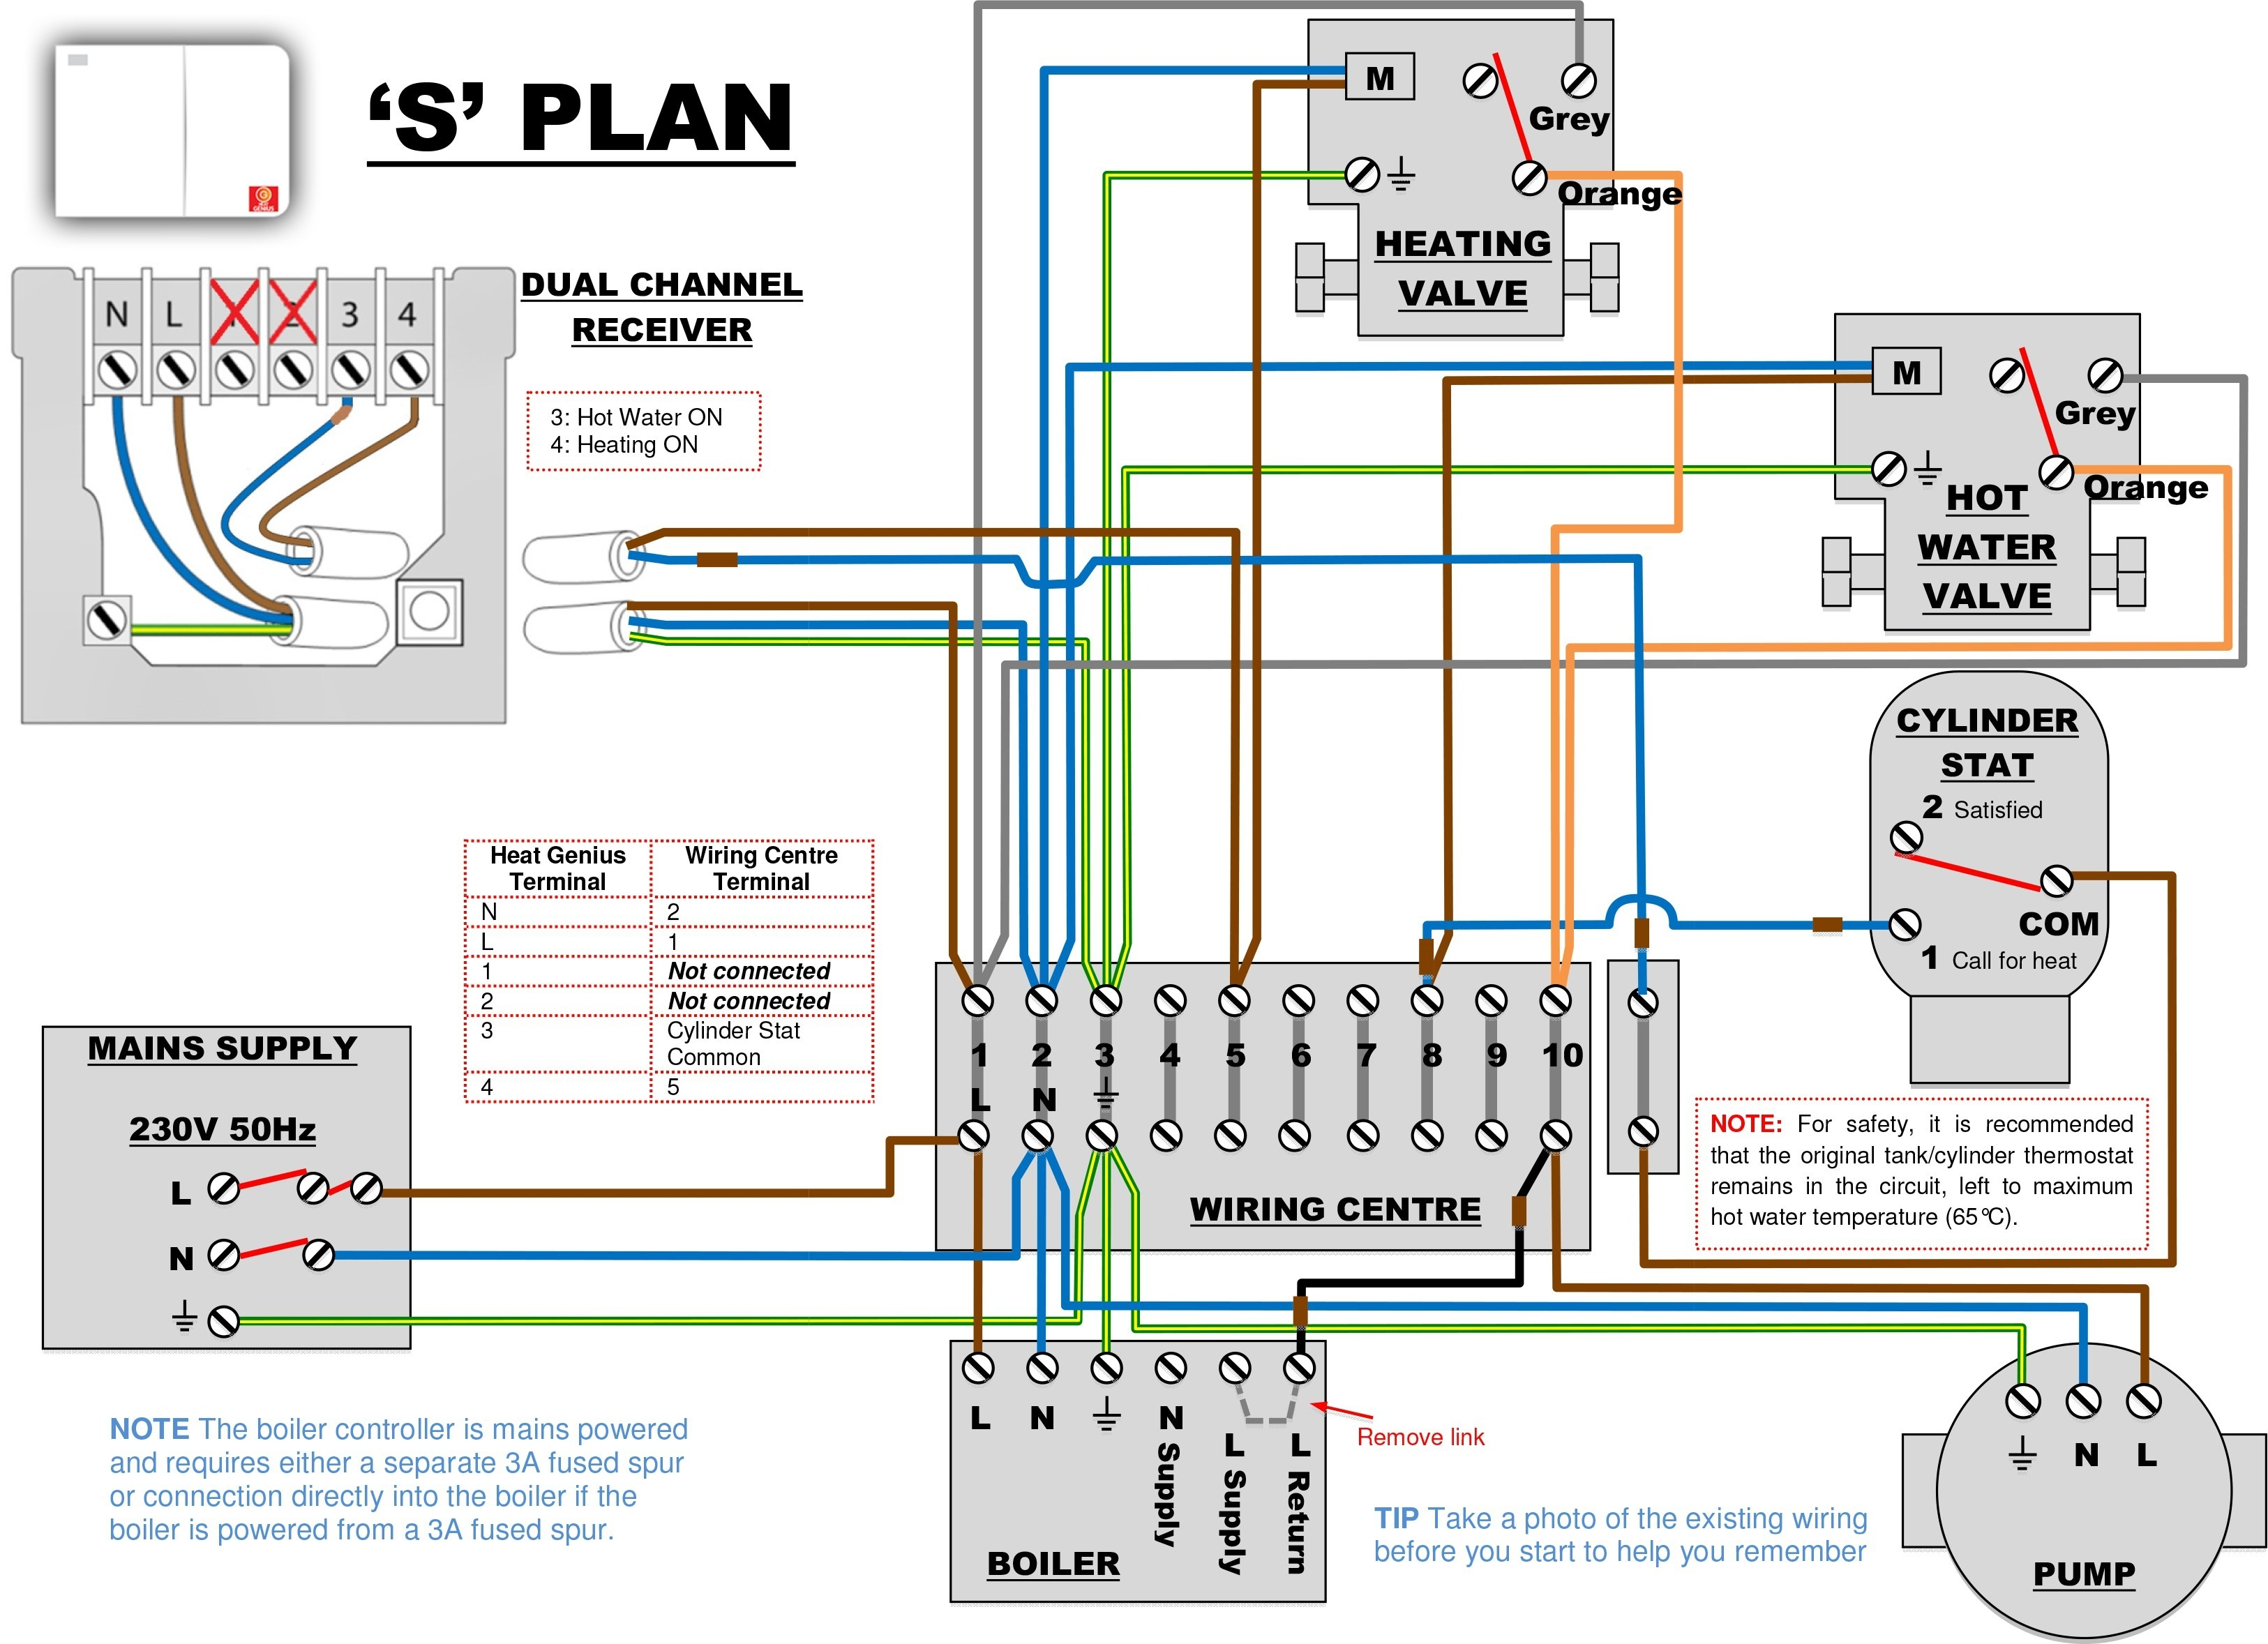 Carrier Infinity Thermostat Wiring | Wiring Diagram - Htp Boiler Systems And Nest Wiring Diagram